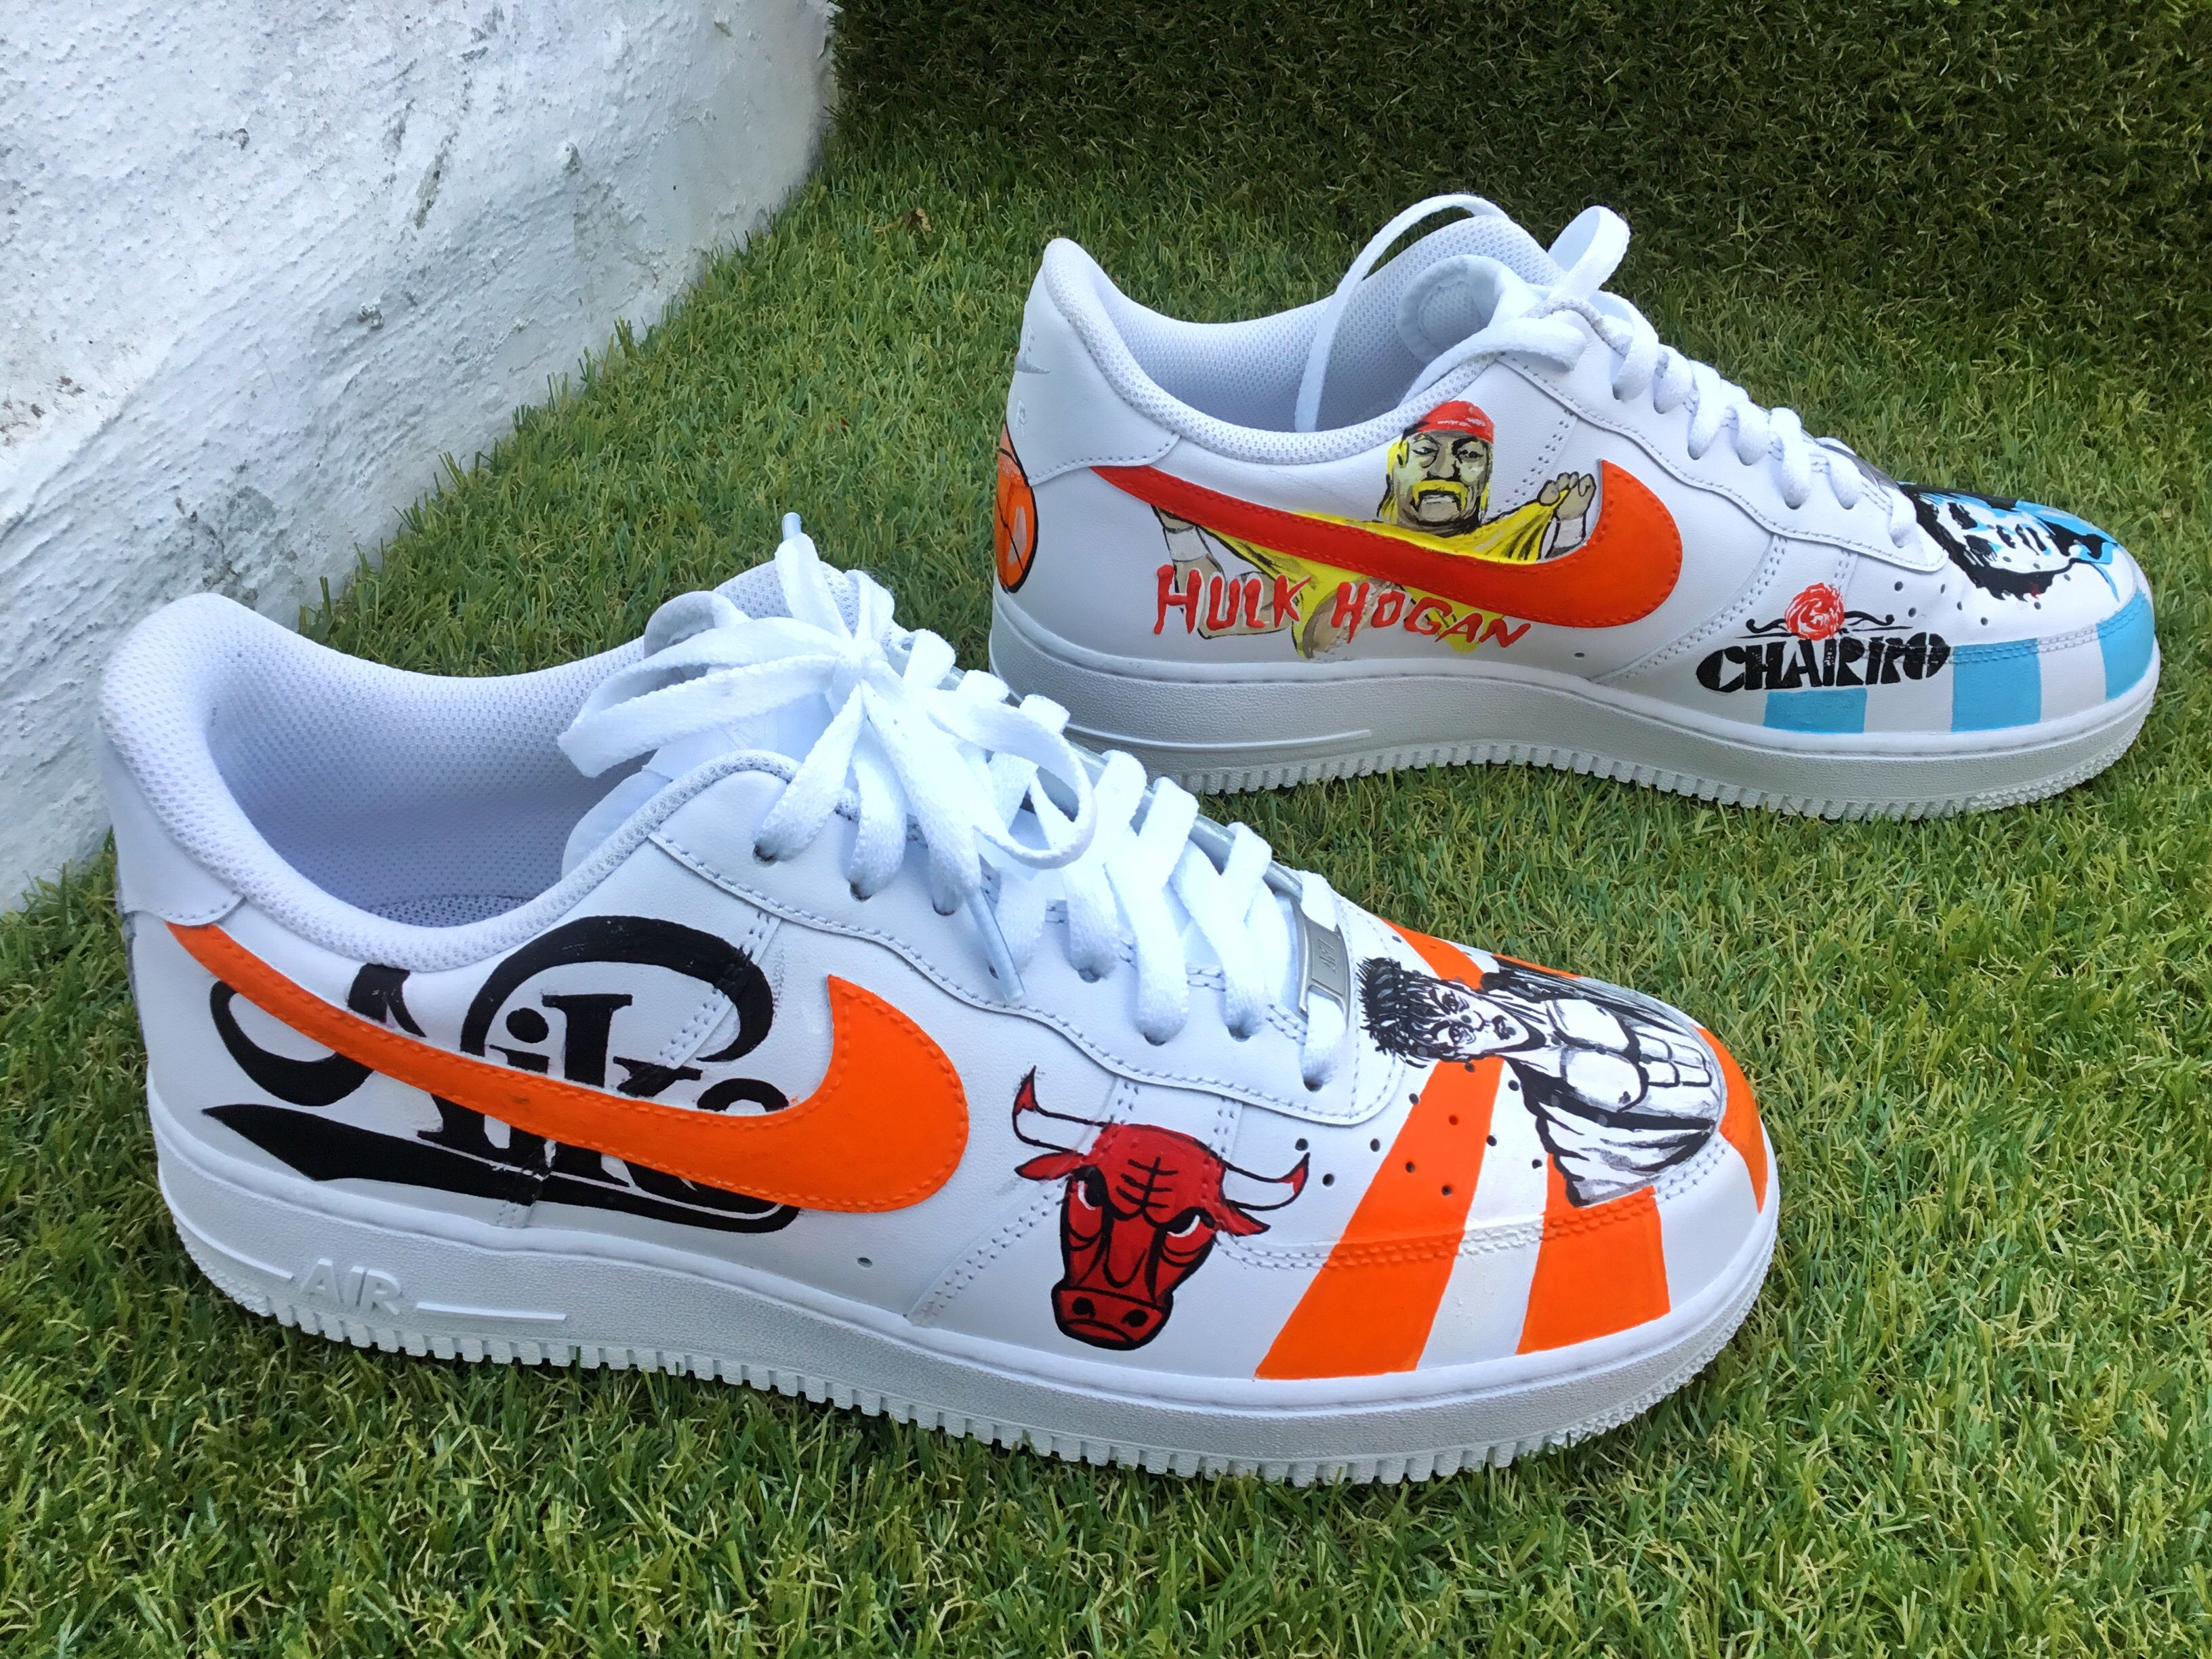 6b20465267c6b Custom painted Nike Air Force one sneakers by vmixo #vmixo ...